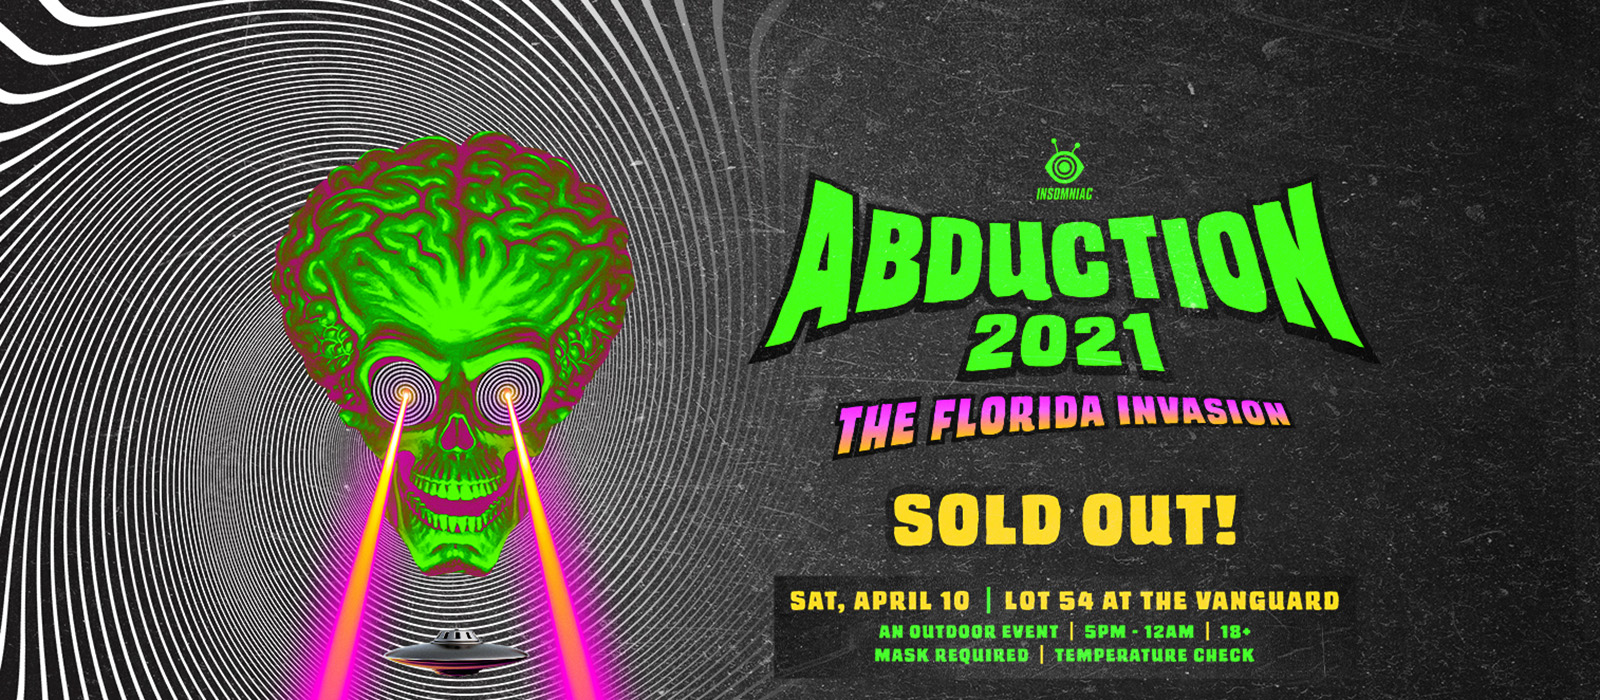 Abduction 2021 - The Florida Invasion - Sold Out!